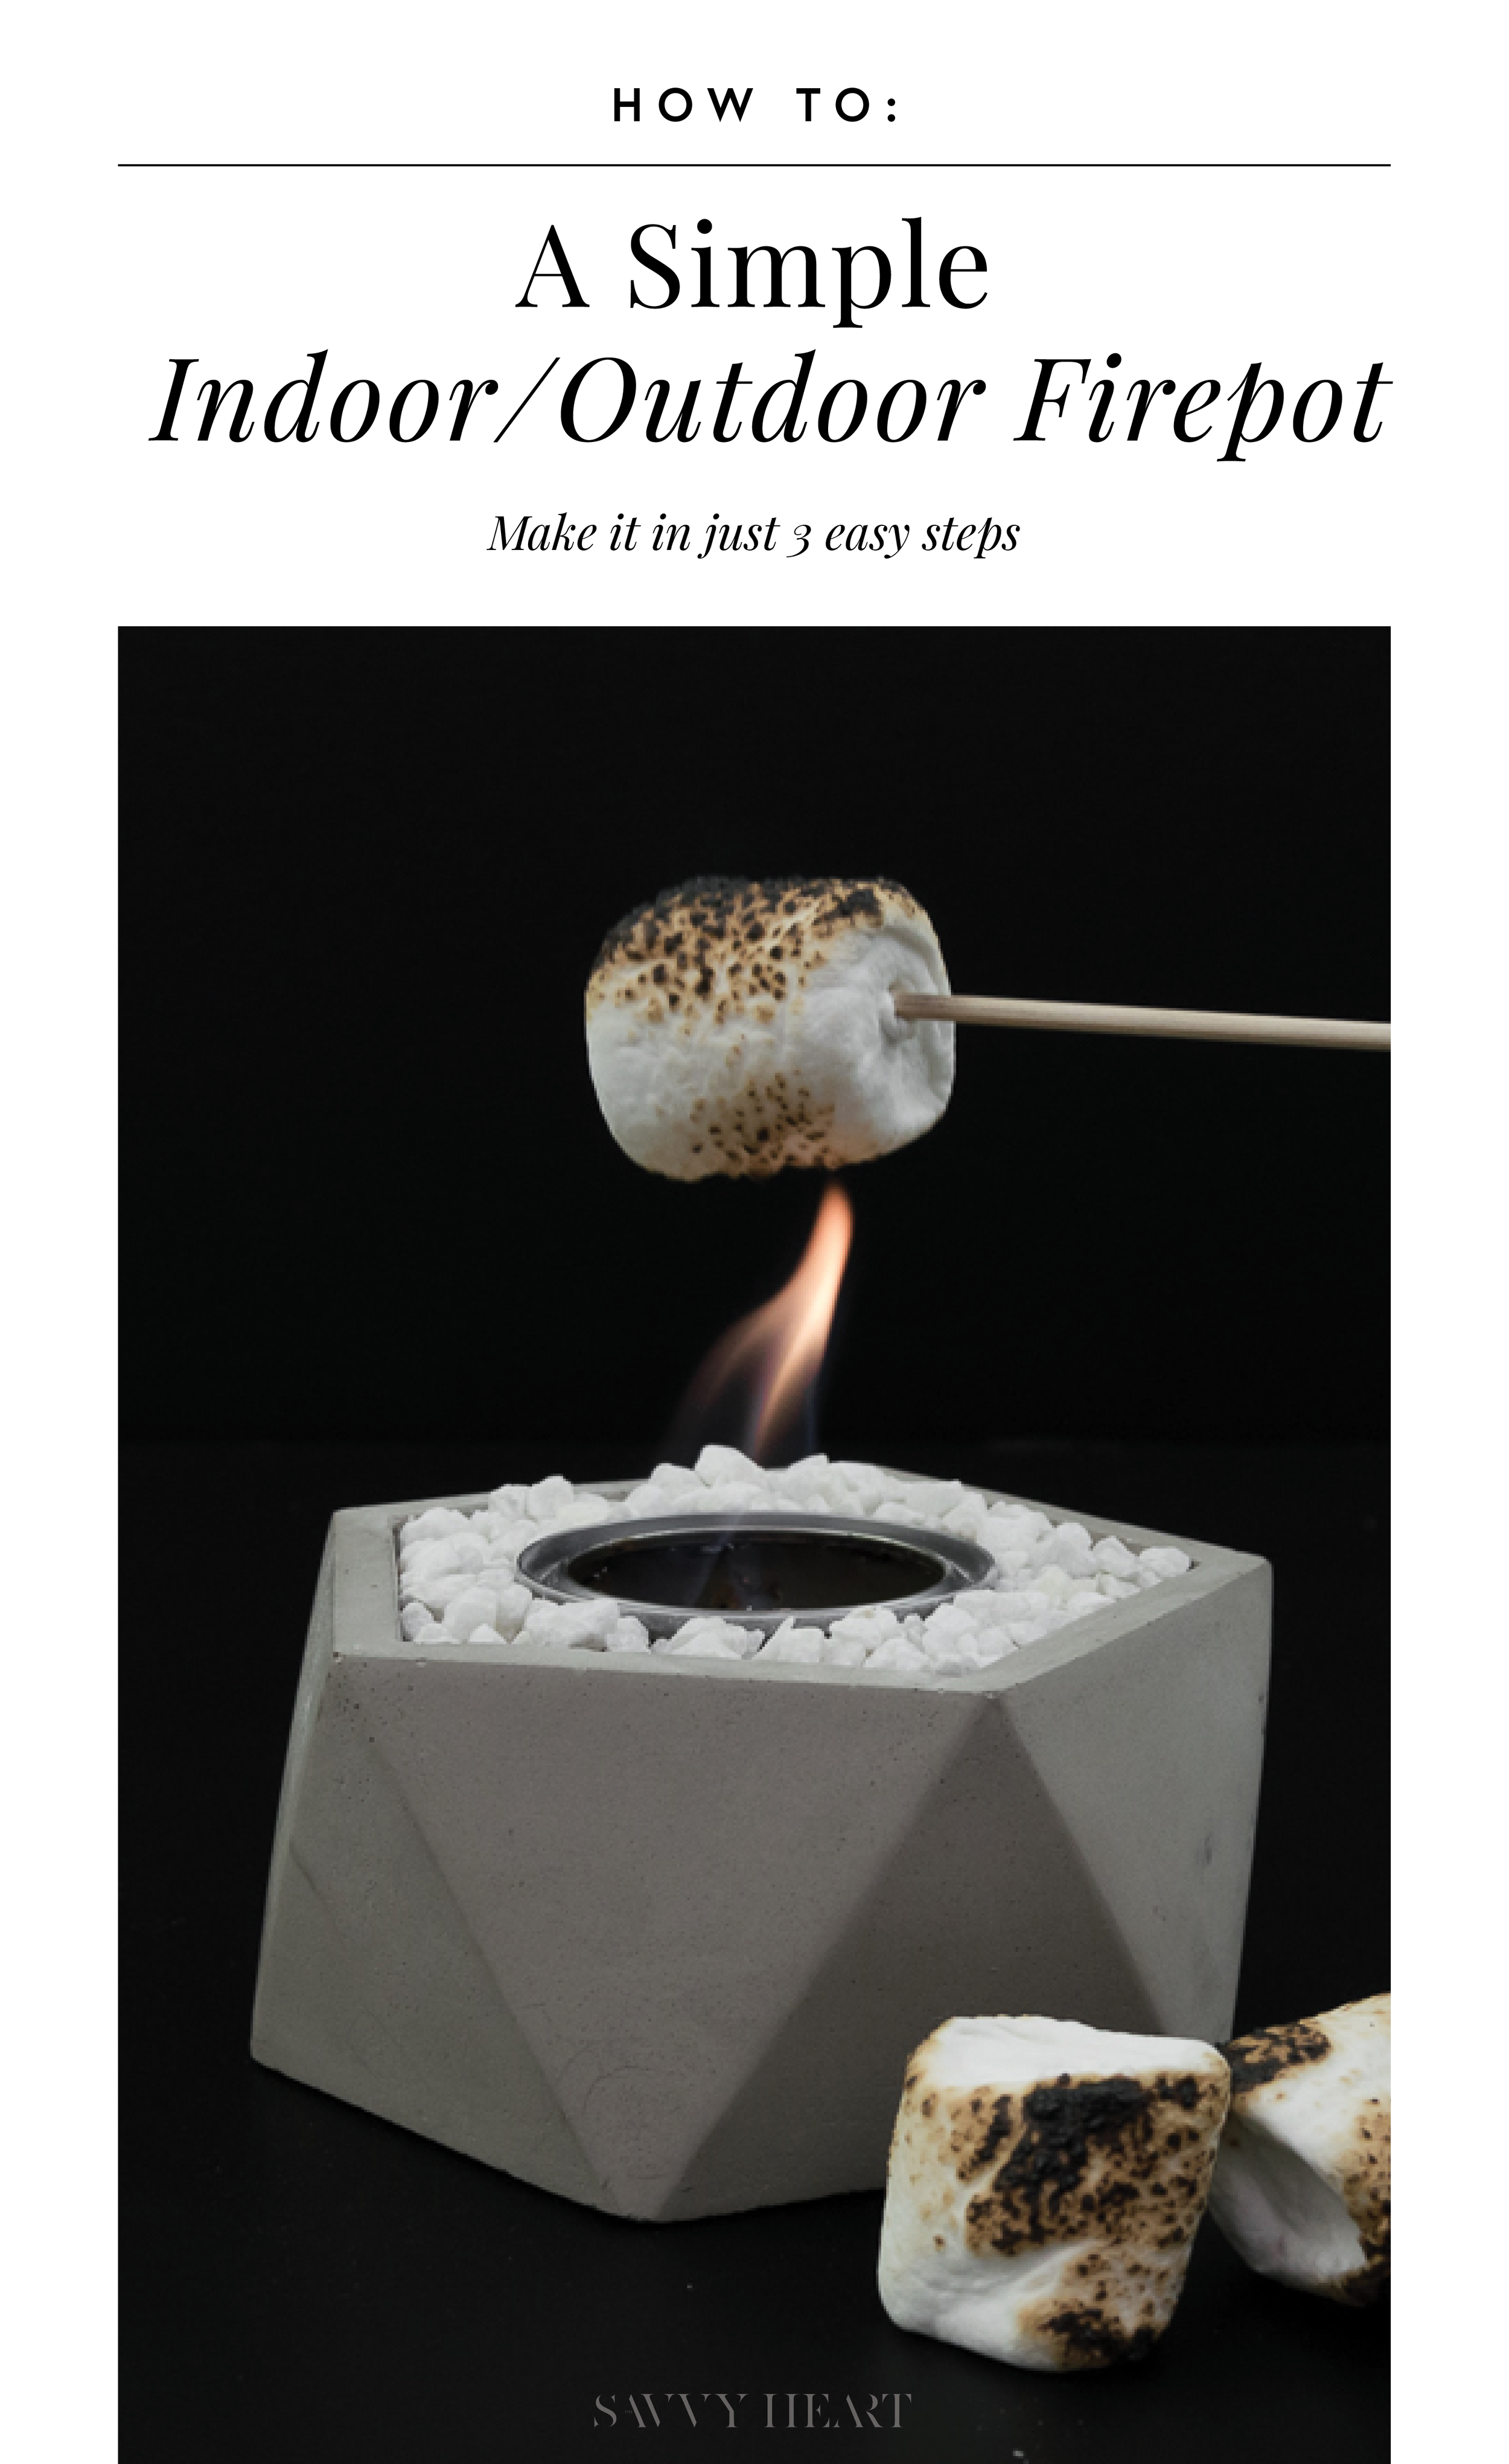 How To: A Simple DIY Indoor / Outdoor Fire Pot by The Savvy Heart